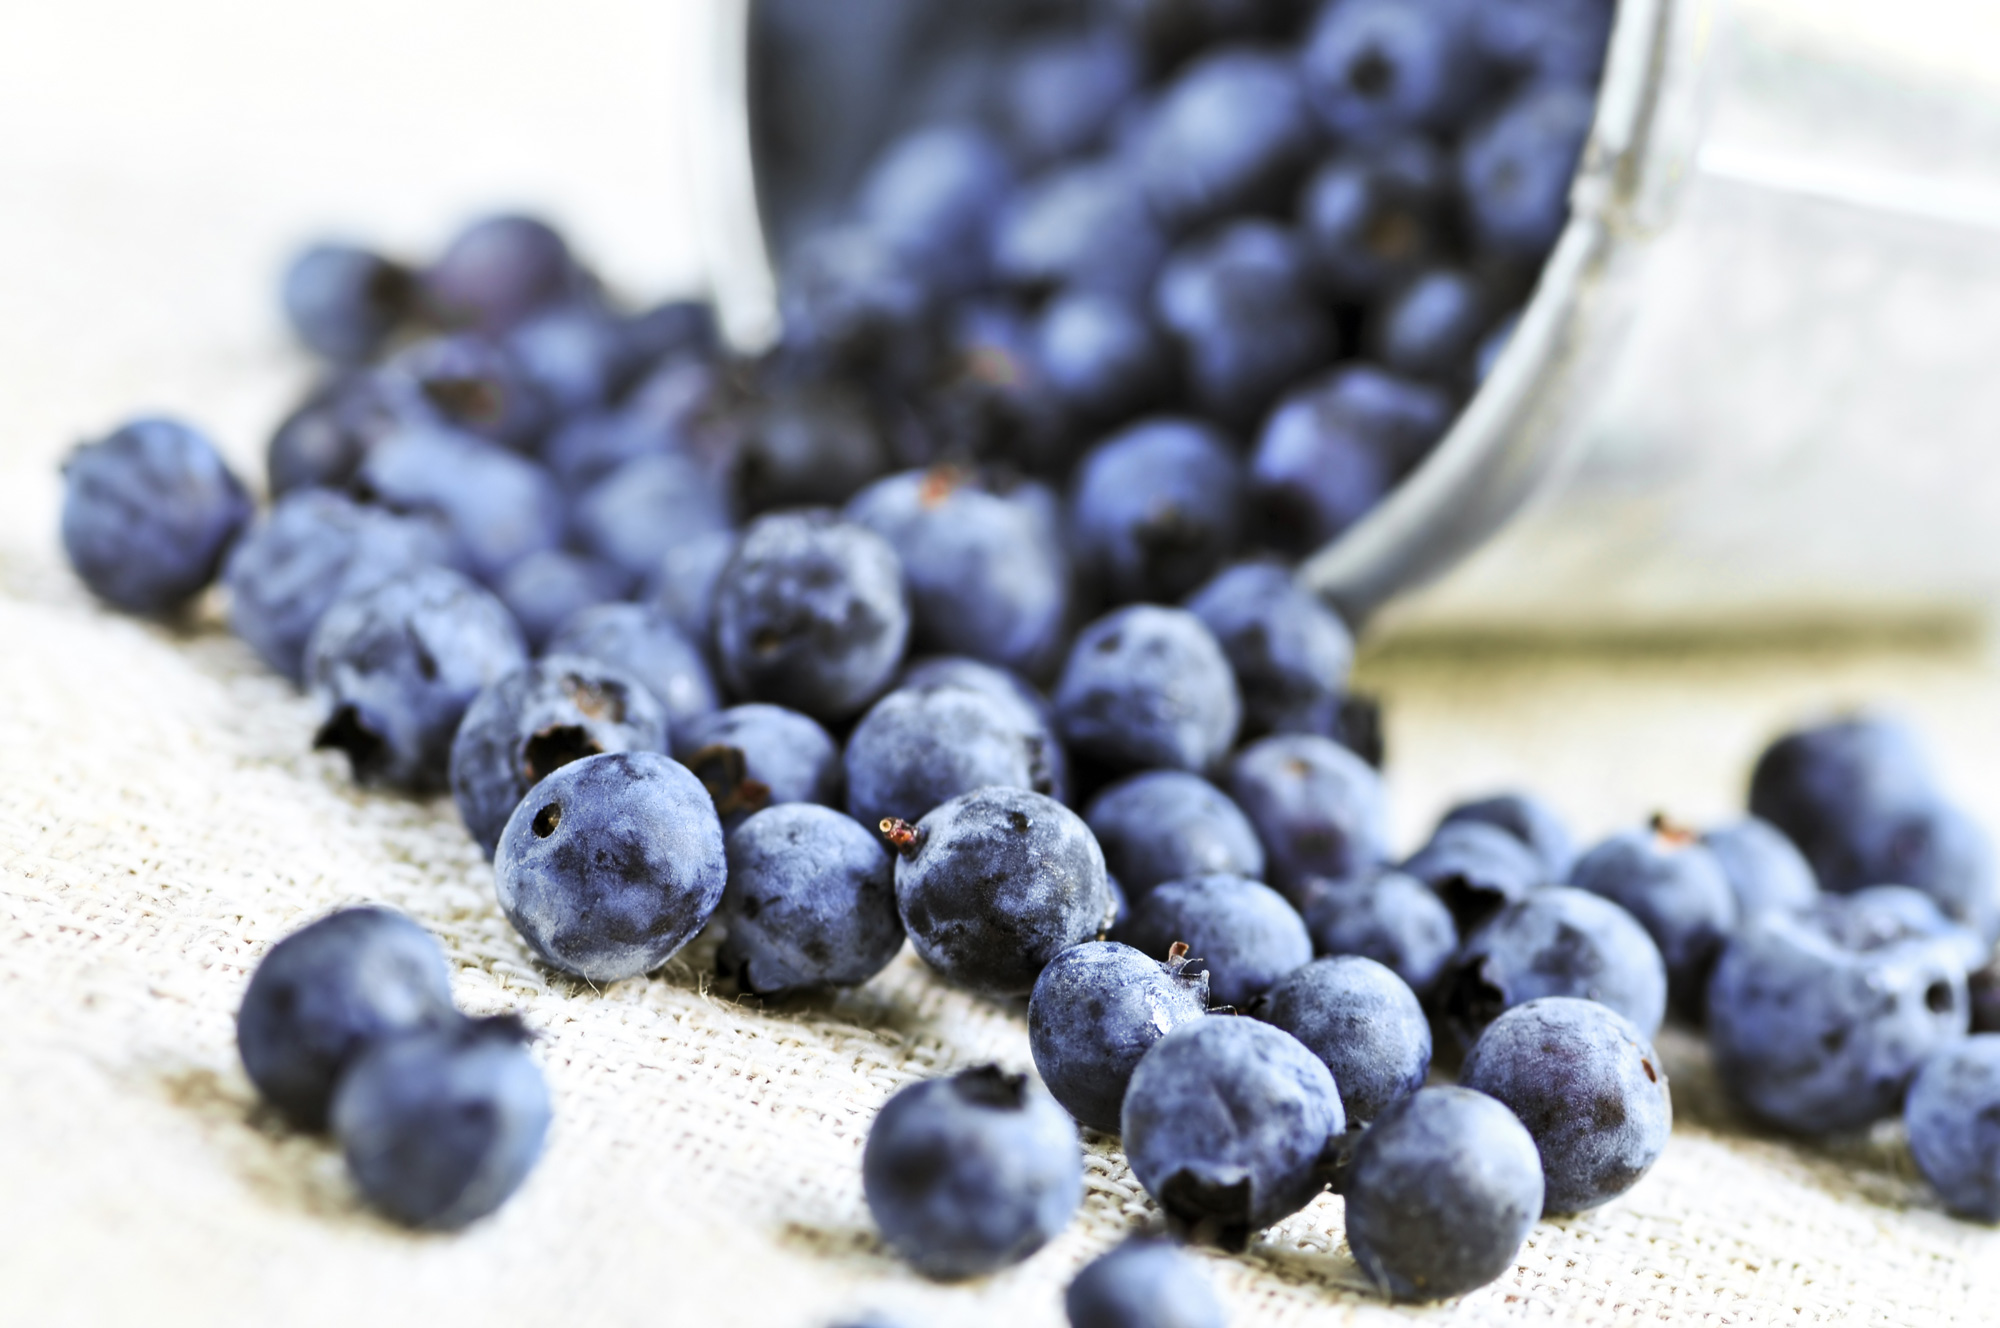 Blueberries are Coated in a White Powder